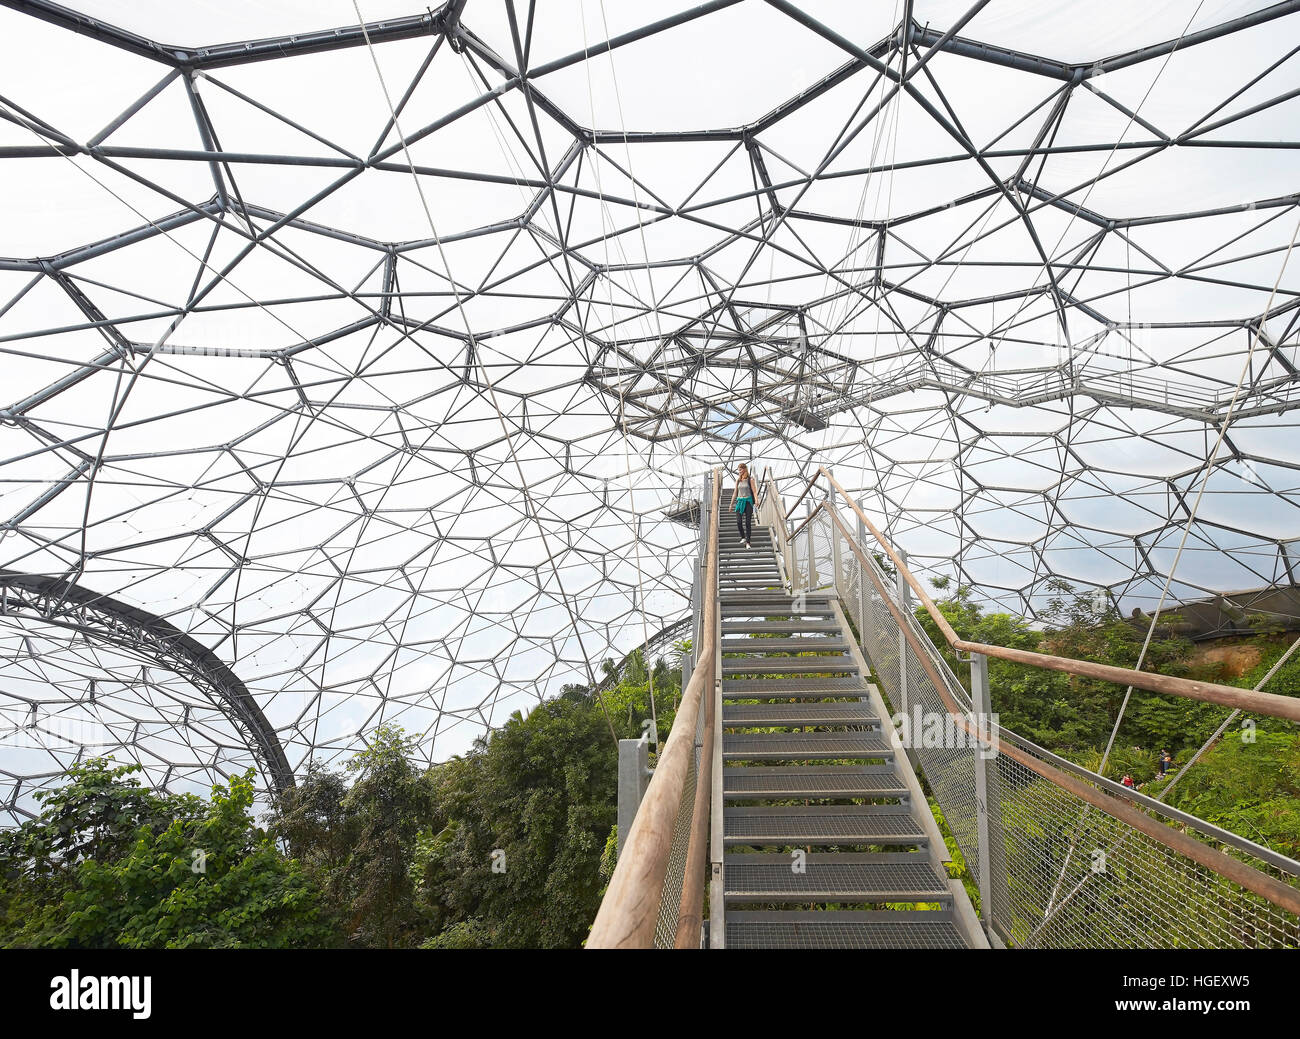 Tensile Metal Structure With Suspended Pathways Eden Project Bodelva United Kingdom Architect Grimshaw 2016